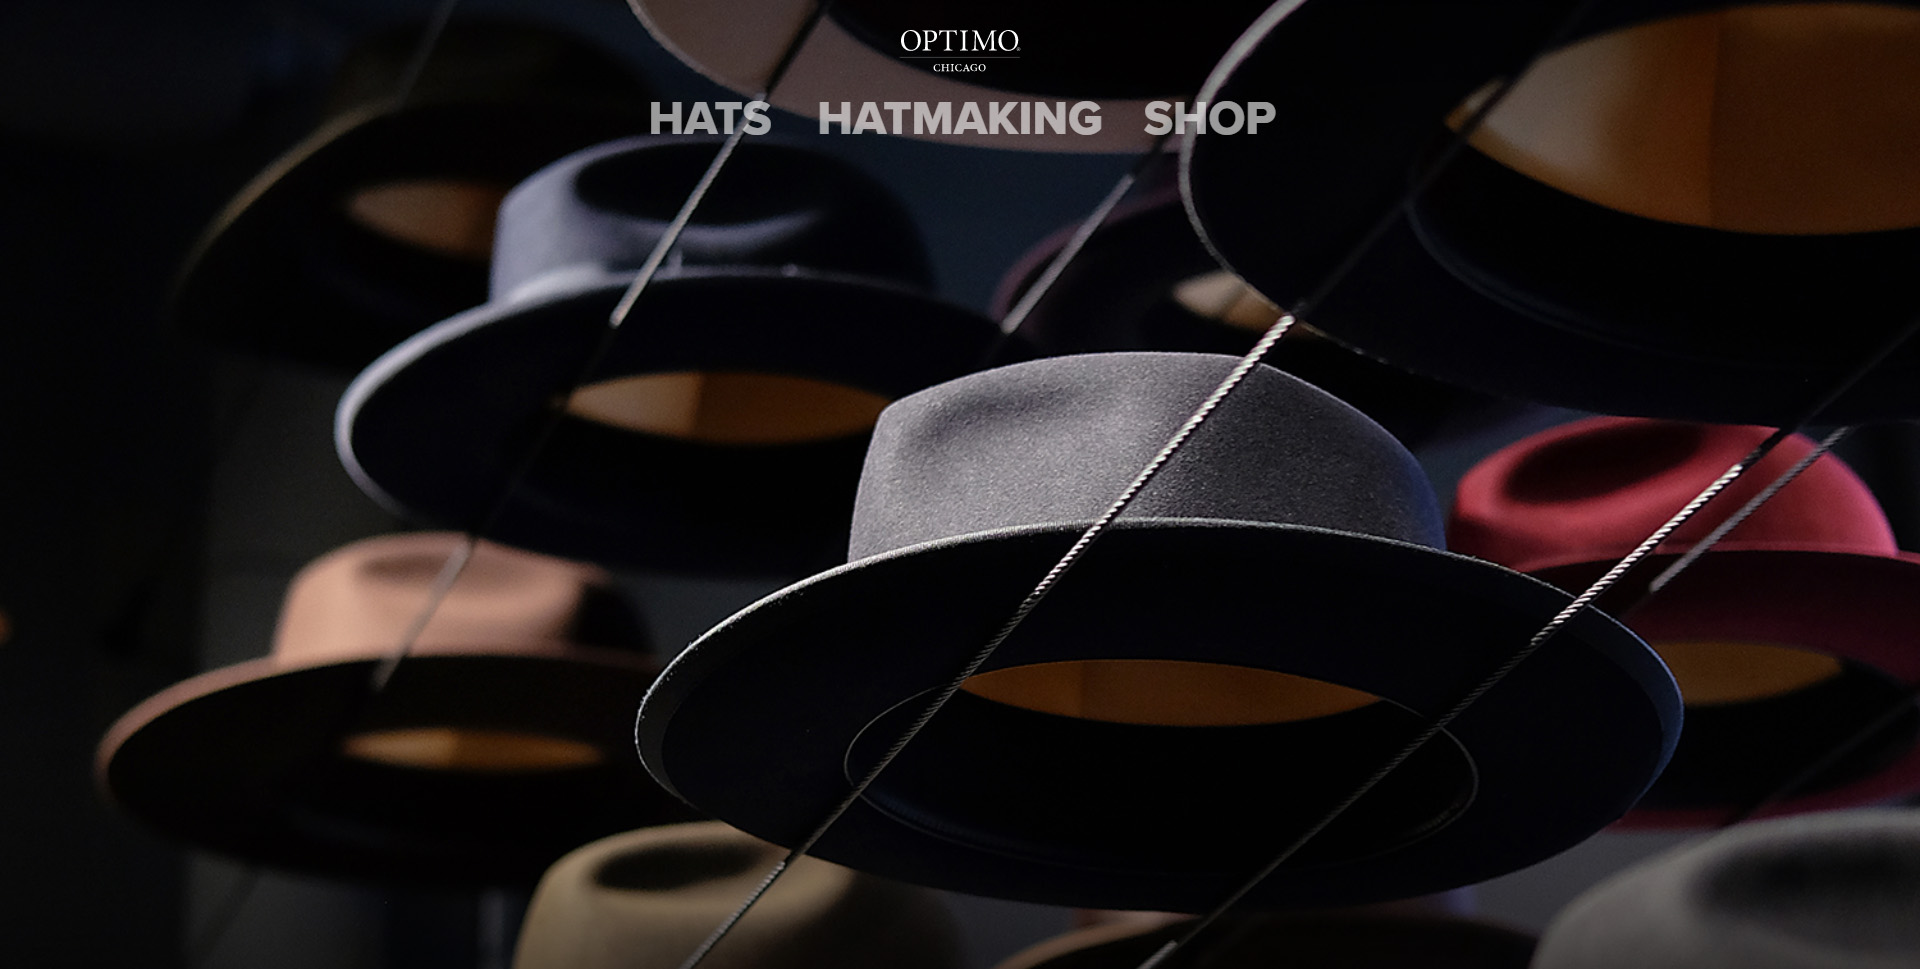 Previous Hat Fashion Website Design Example